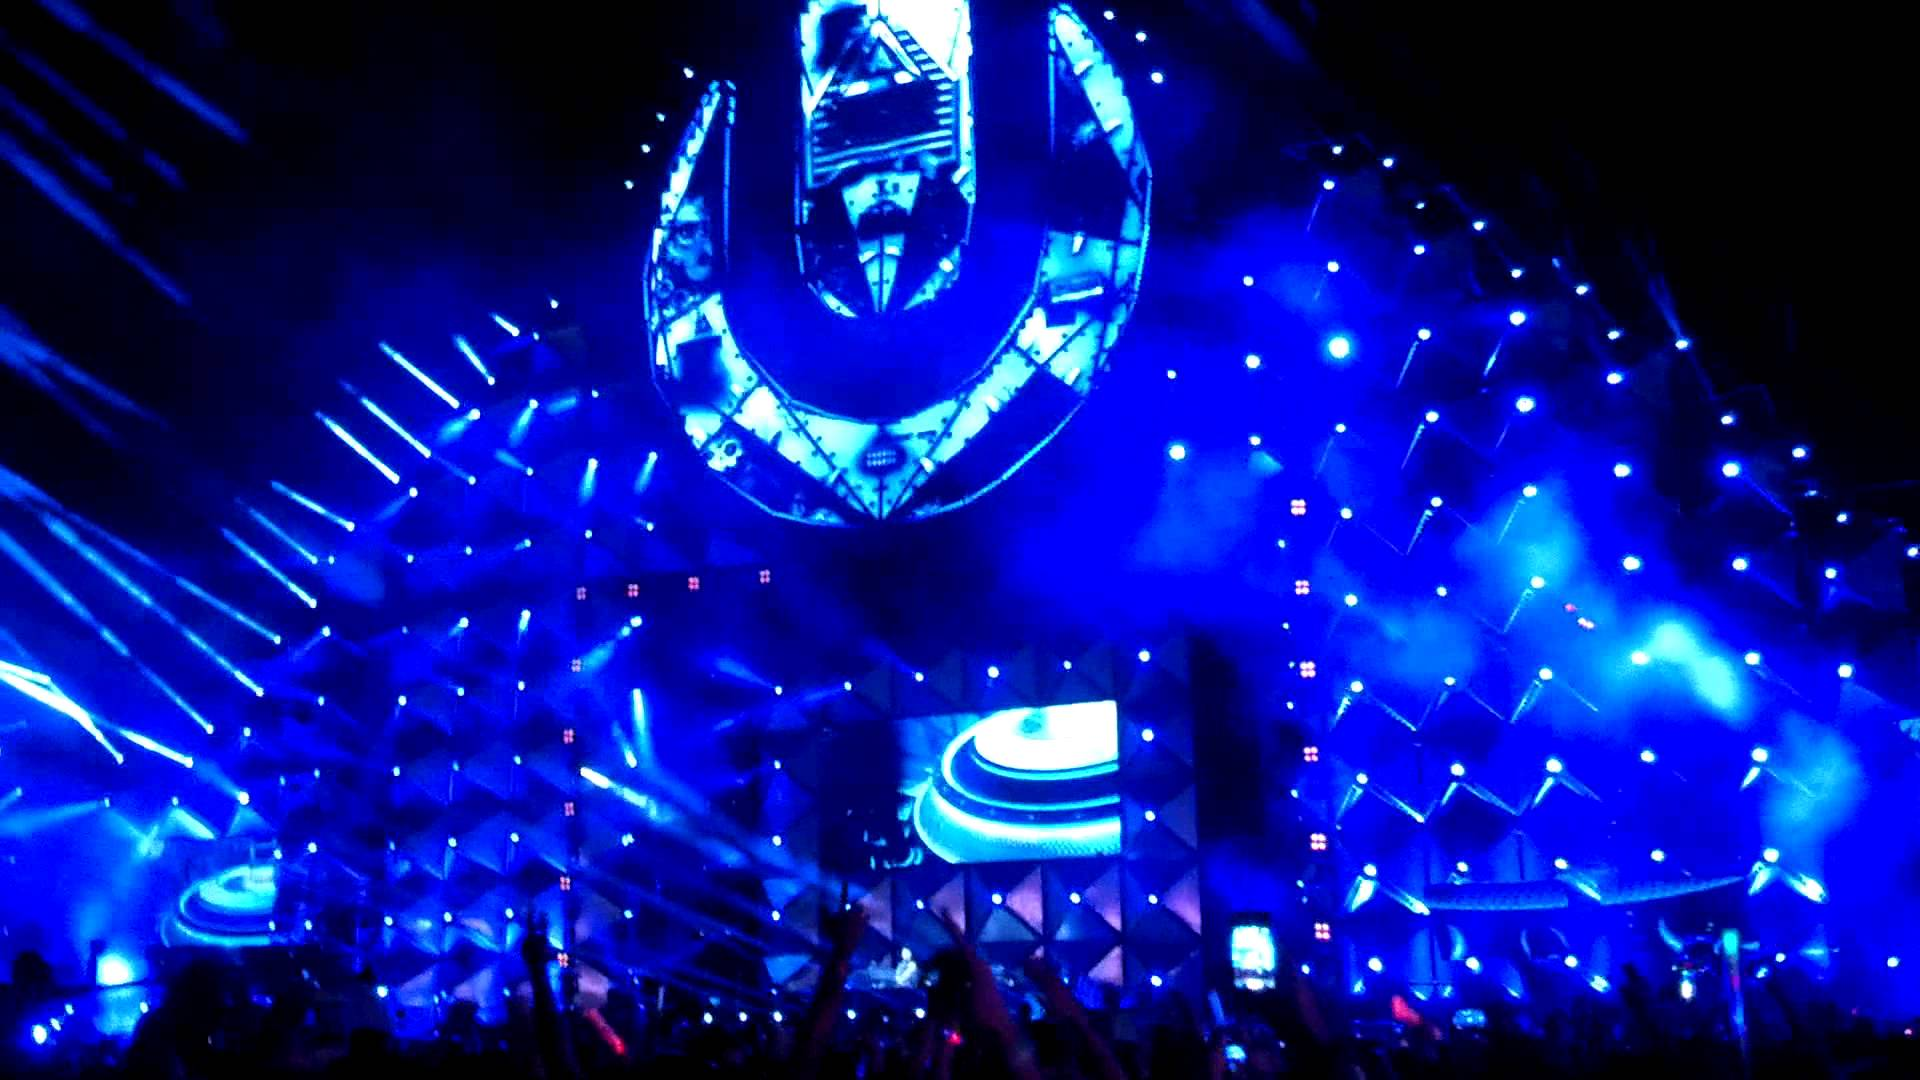 edm concert background - photo #3